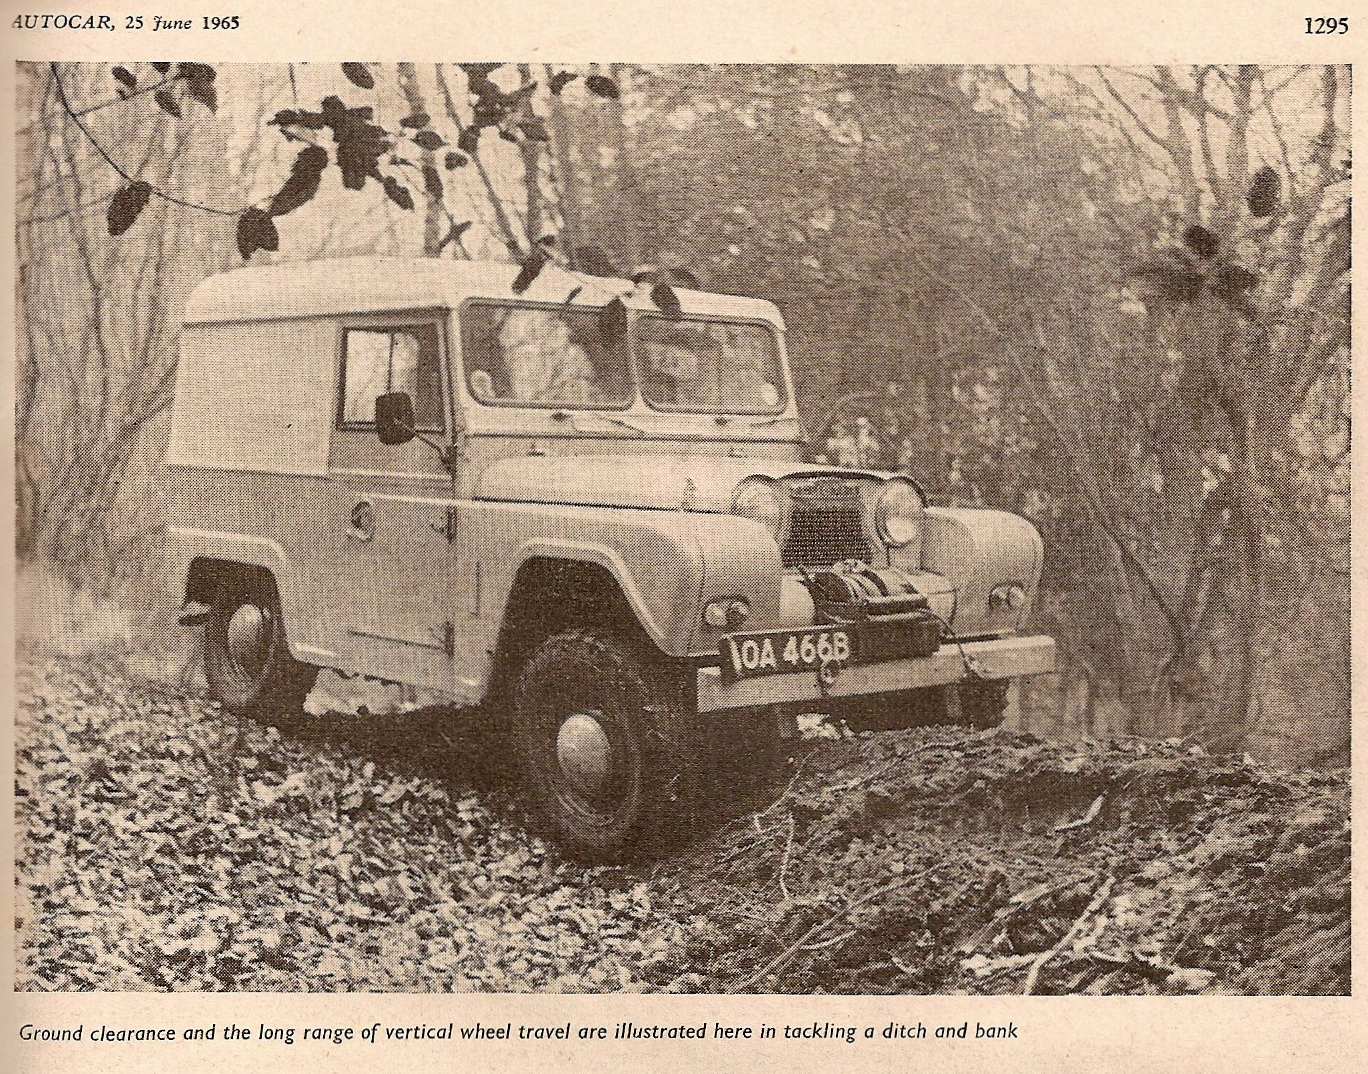 As can be seen by the angles of the front and rear wheels the Austin Gipsy had a fully independent suspension front and rear. (Picture courtesy Autocar and austingipsy.net).